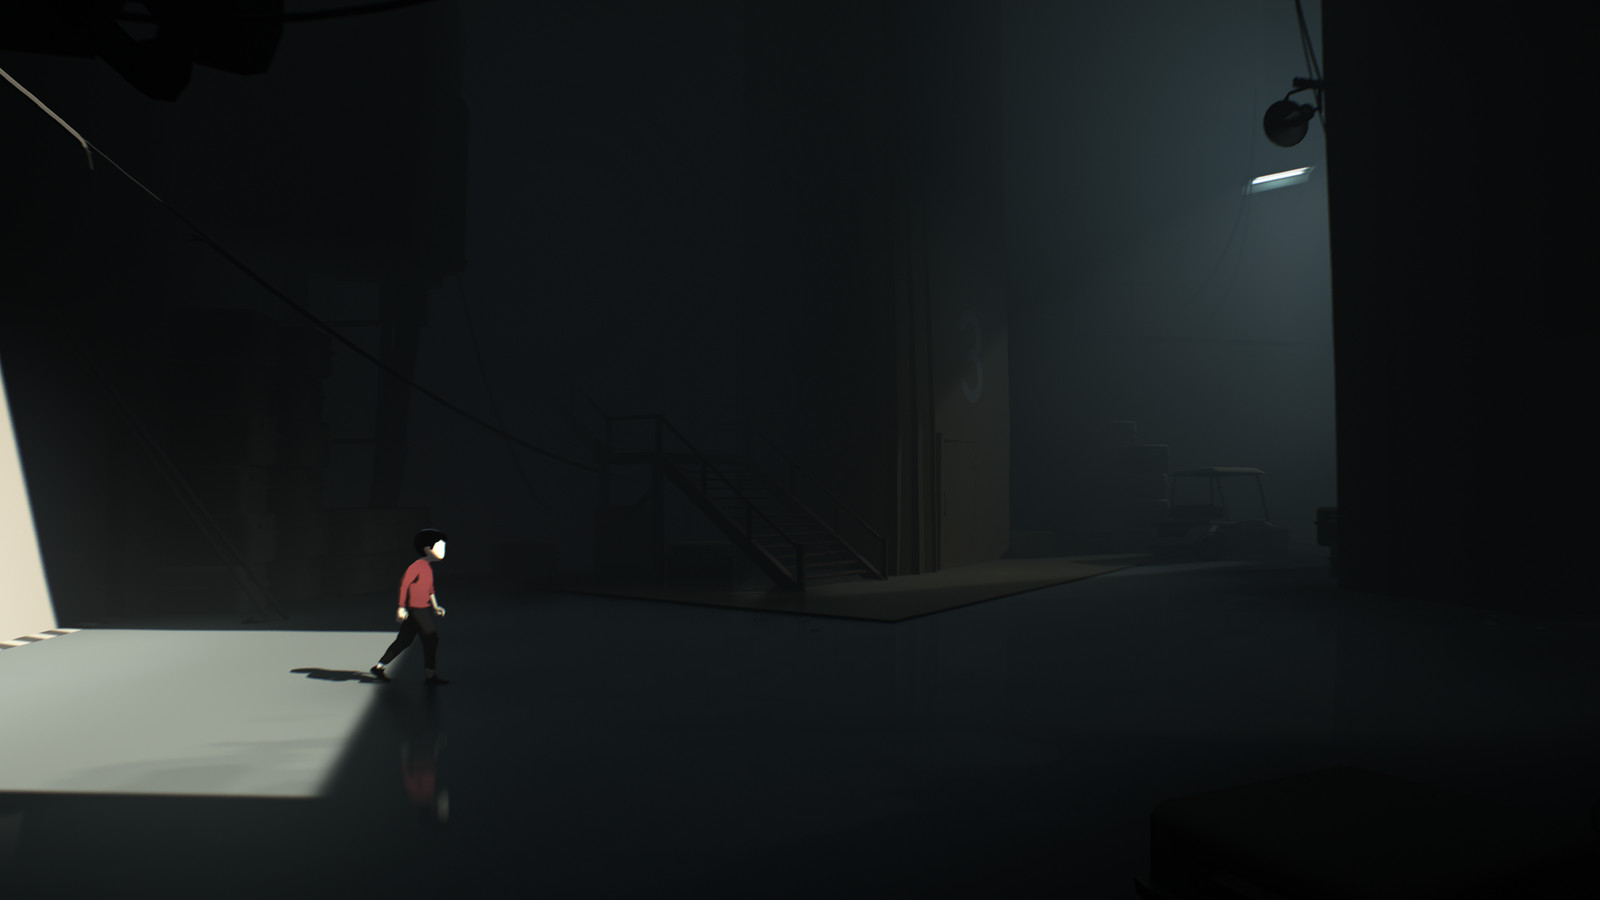 Inside The Twisted Follow Up To Limbo Launches June 29th